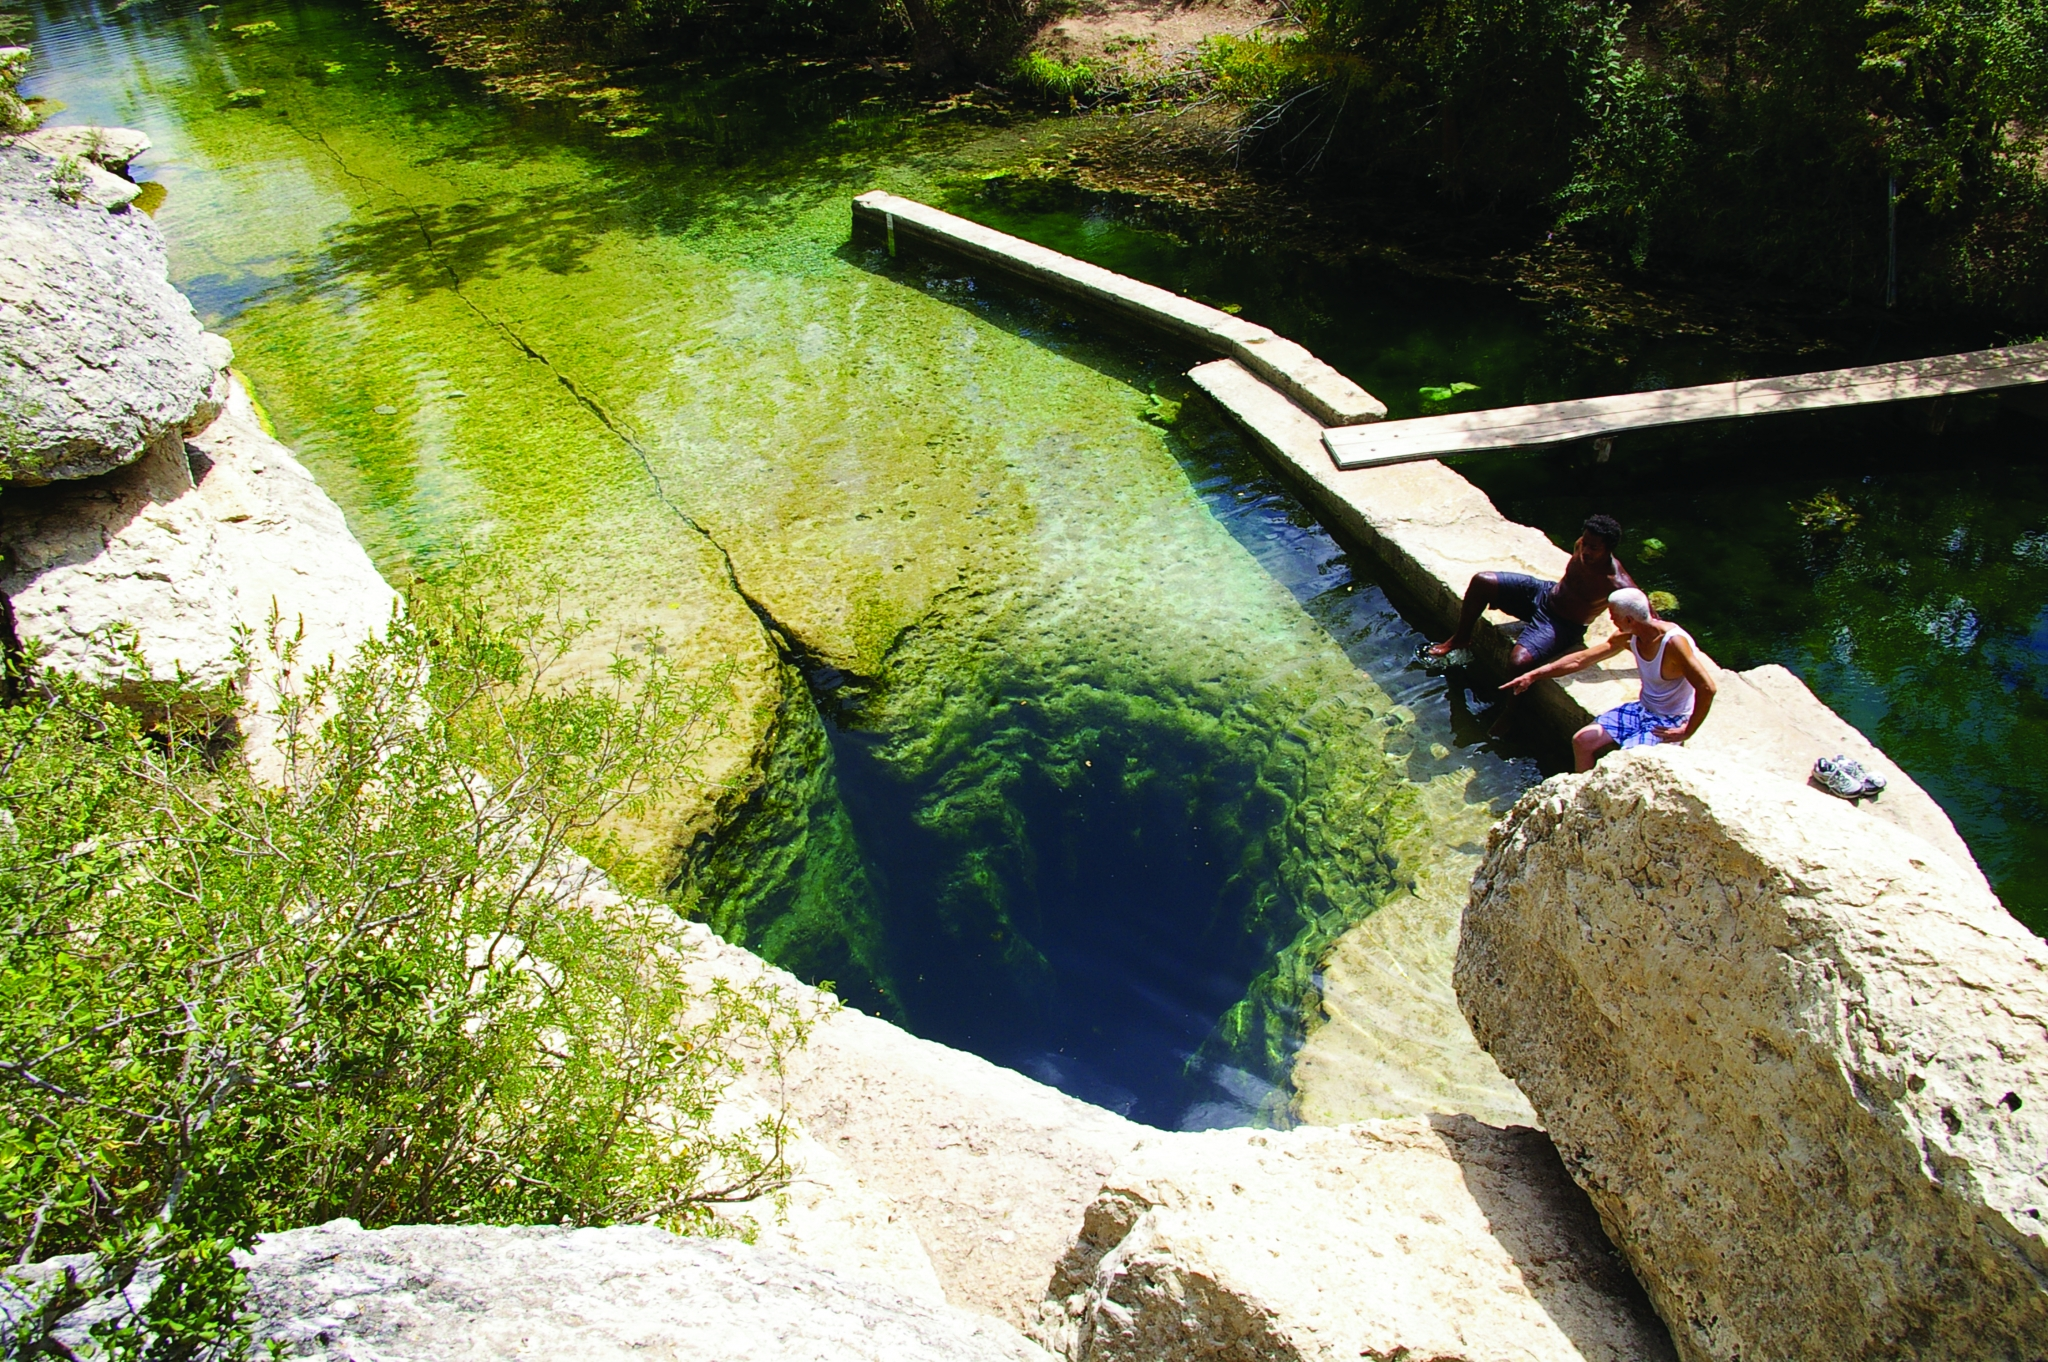 New Regulations For Jacob S Well Include Admission Fee